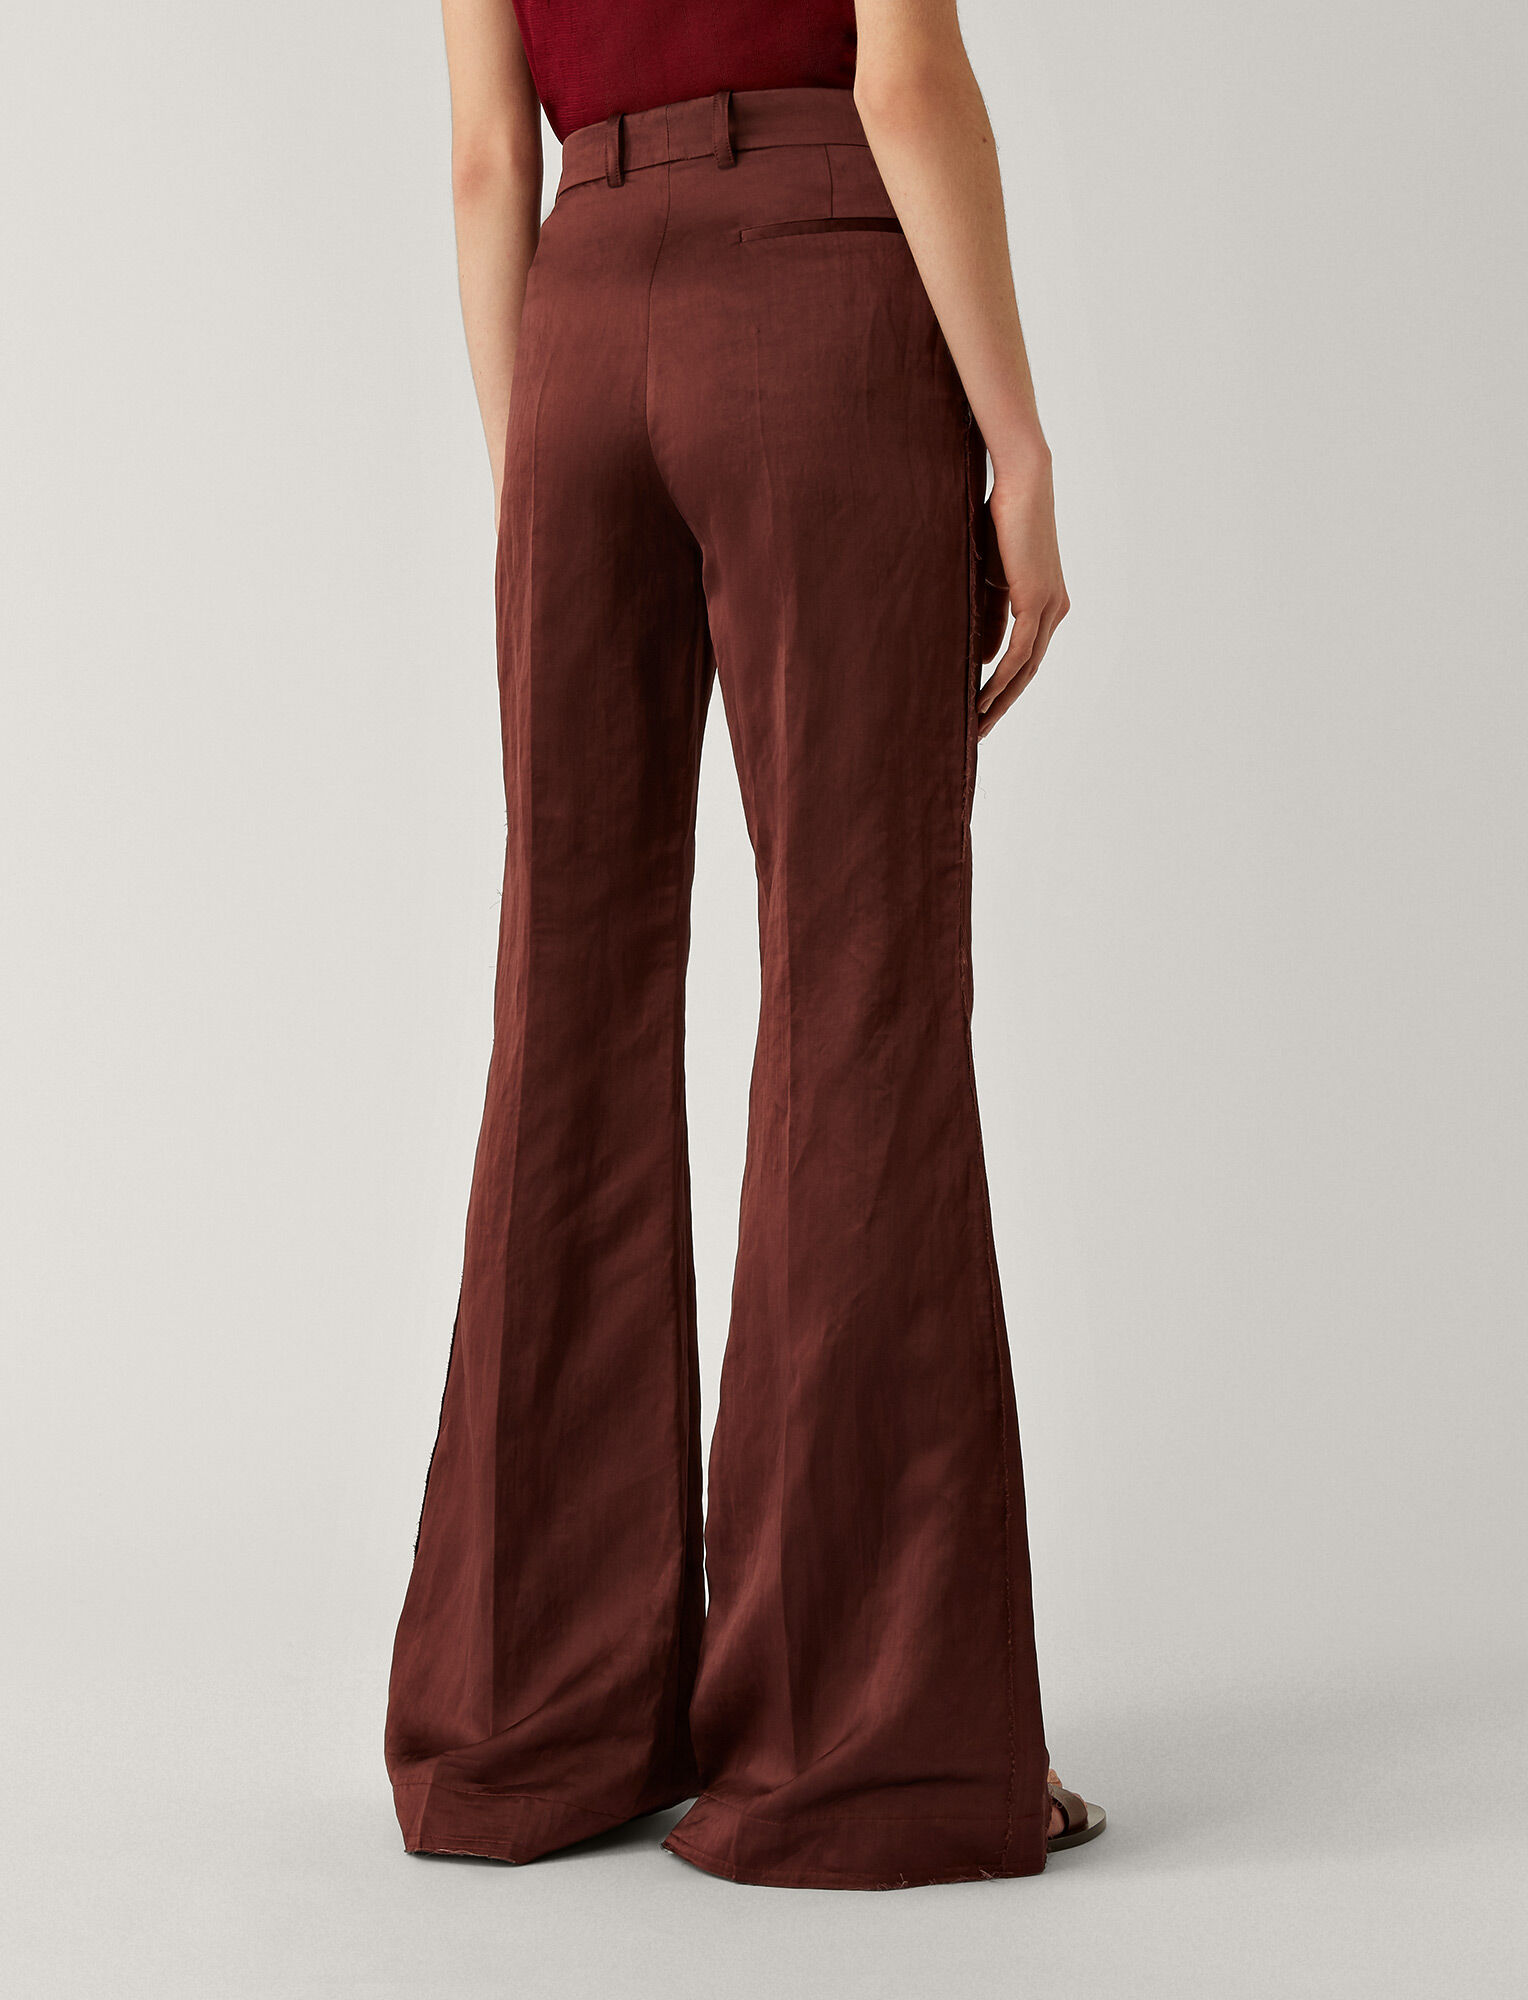 Joseph, Tana Chintz Trousers, in MERLOT